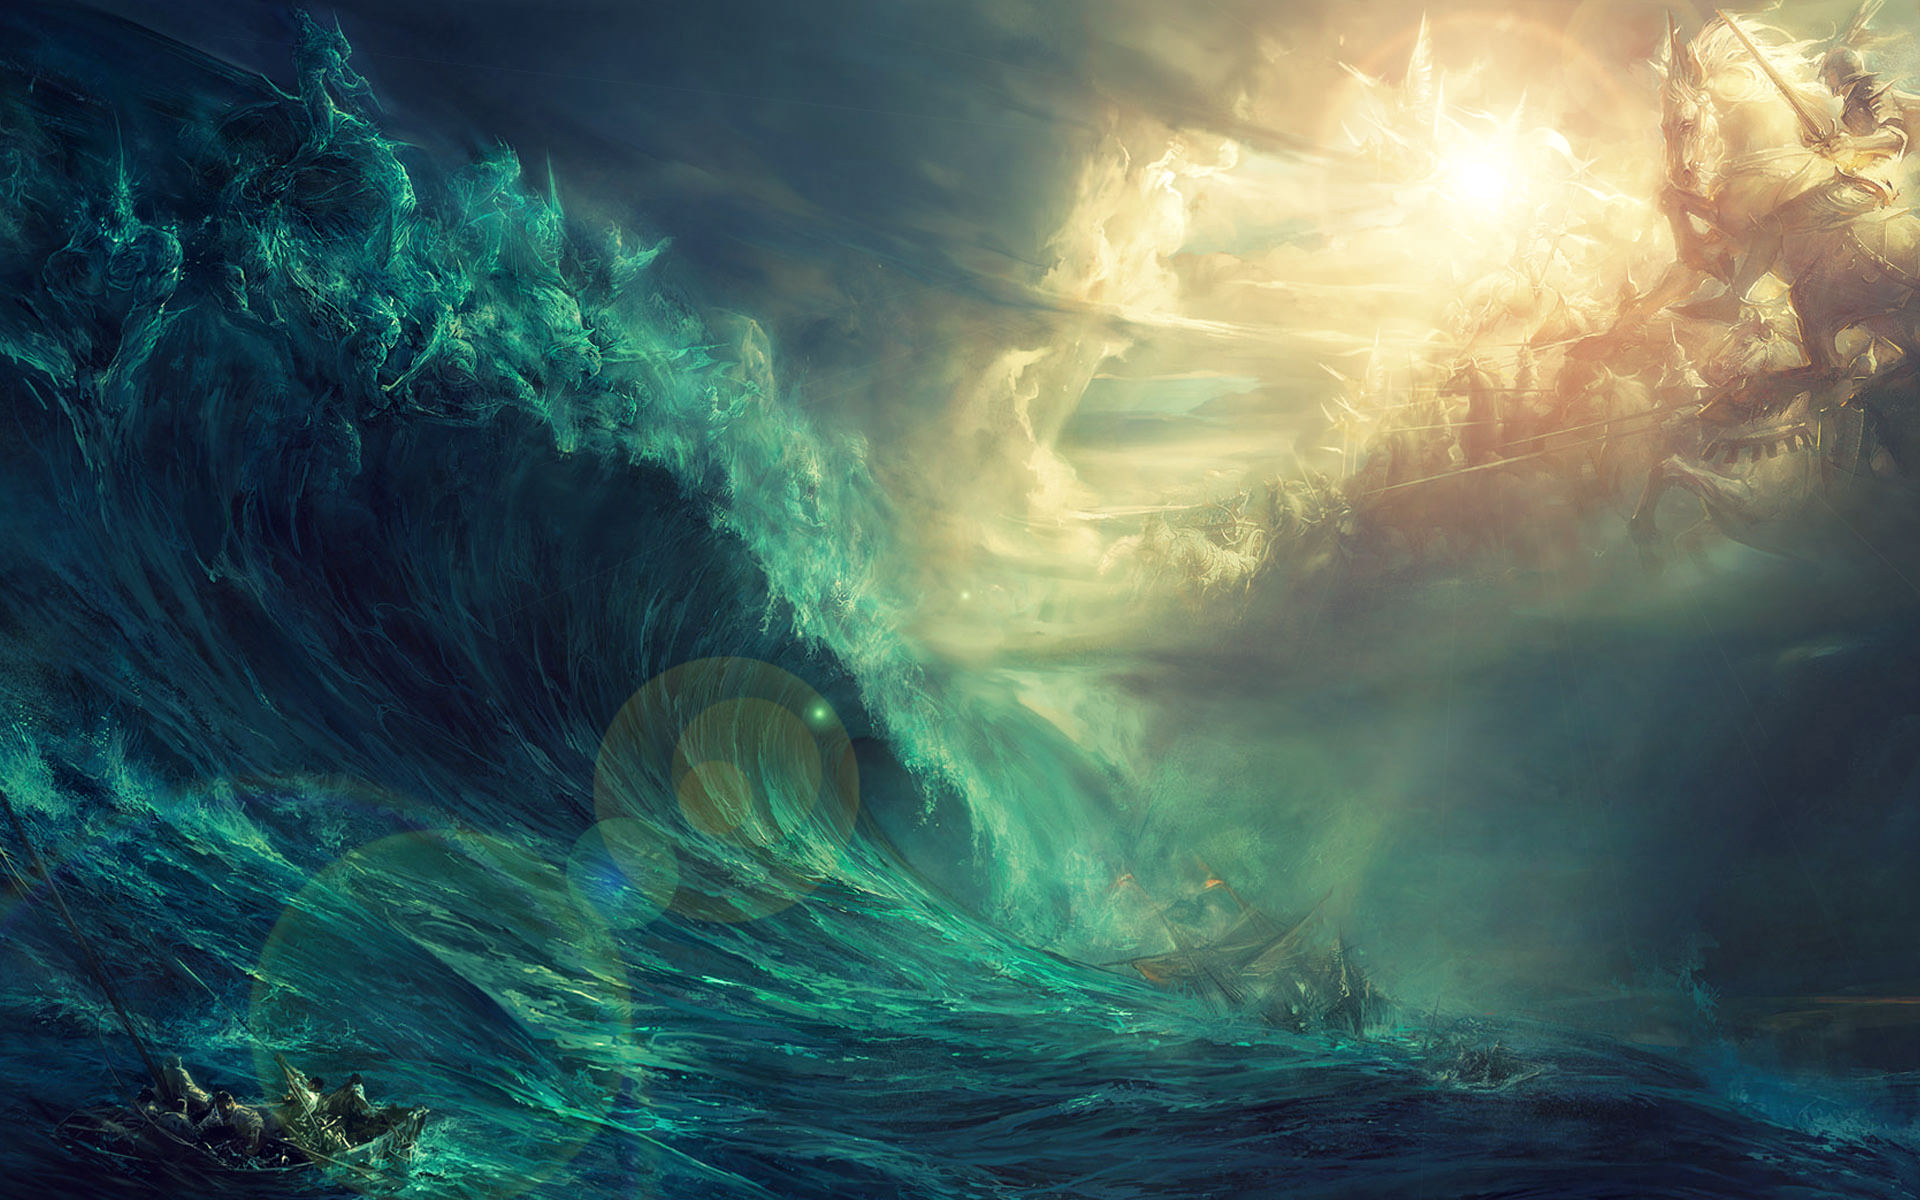 sea wallpaper tim lelek march 24 2014 epic wallpapers wallpapers